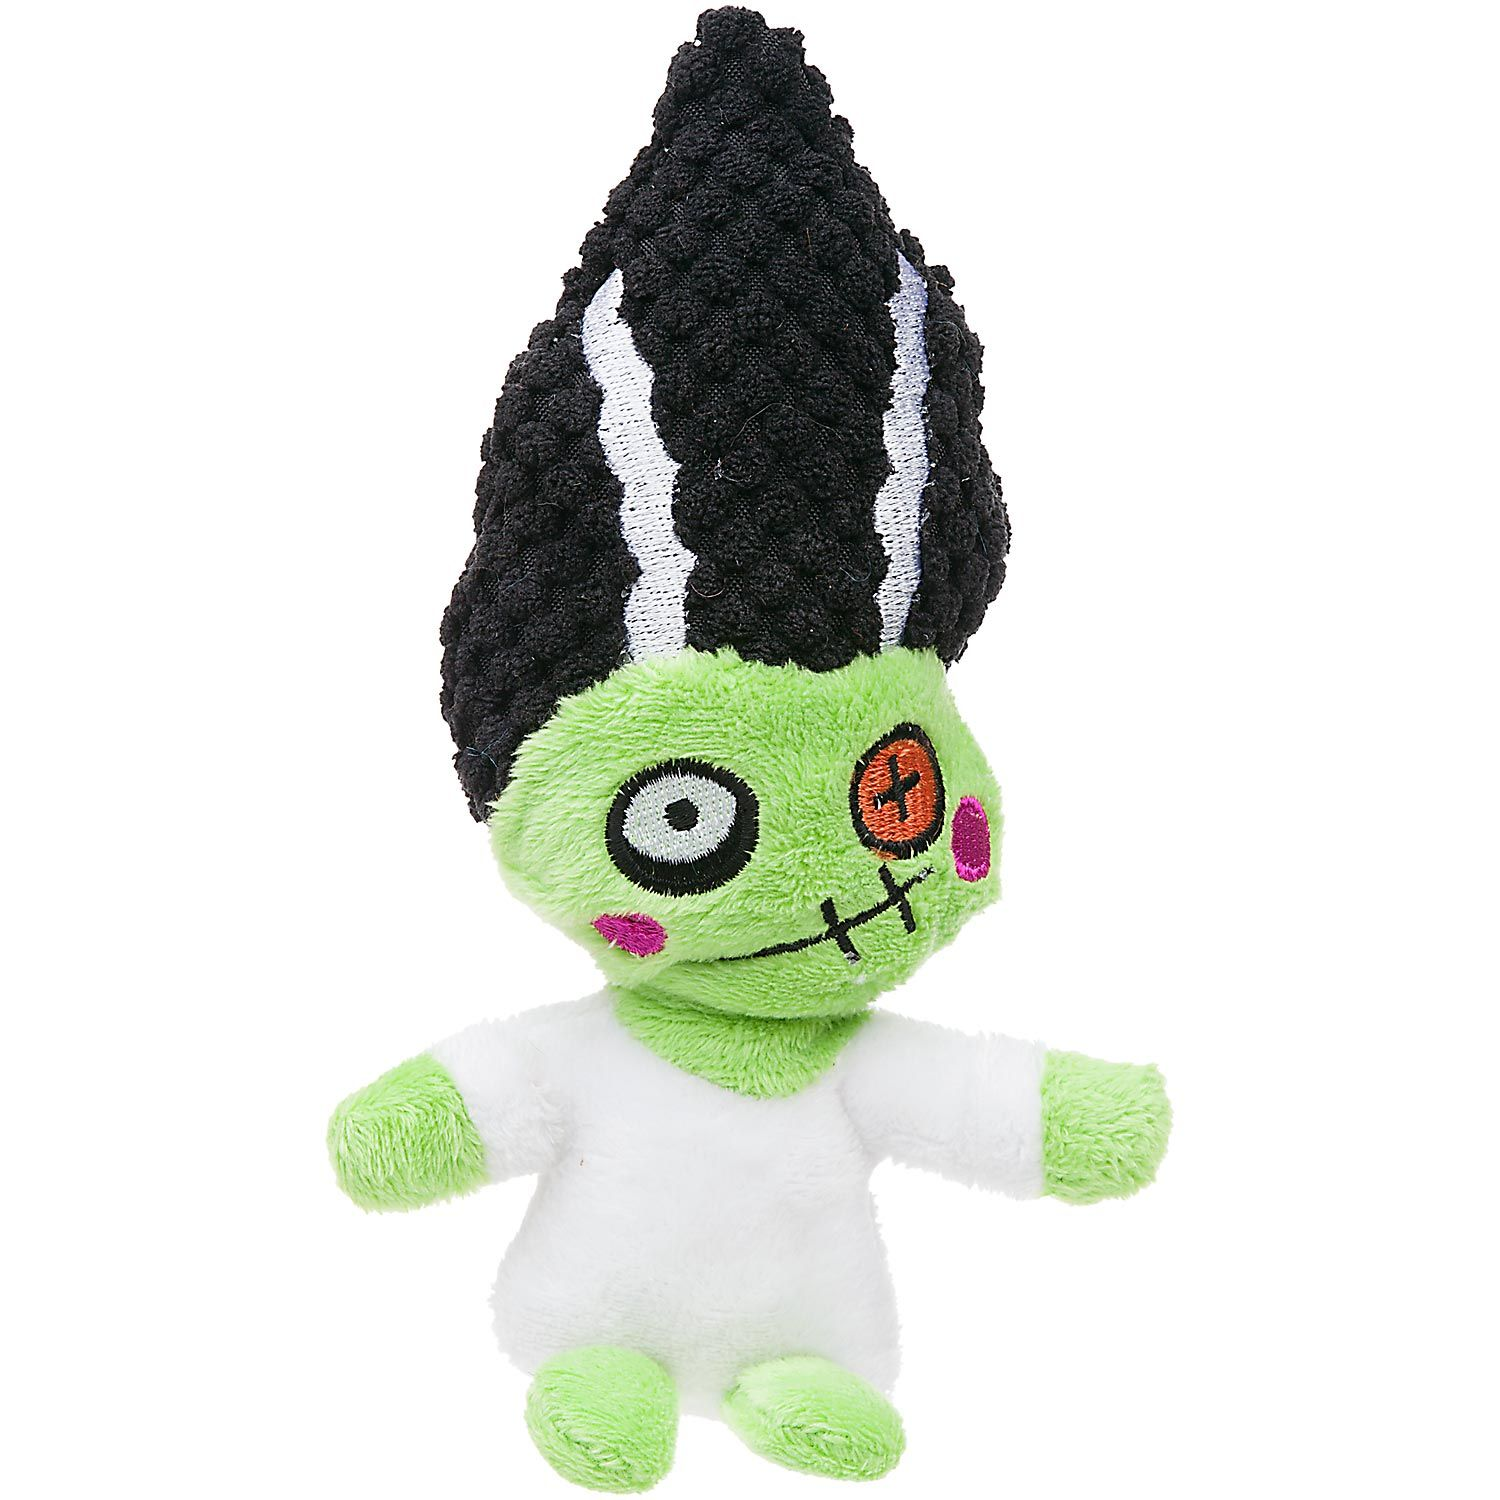 petco halloween zombie plush dog toy 6 99 at petco zombies